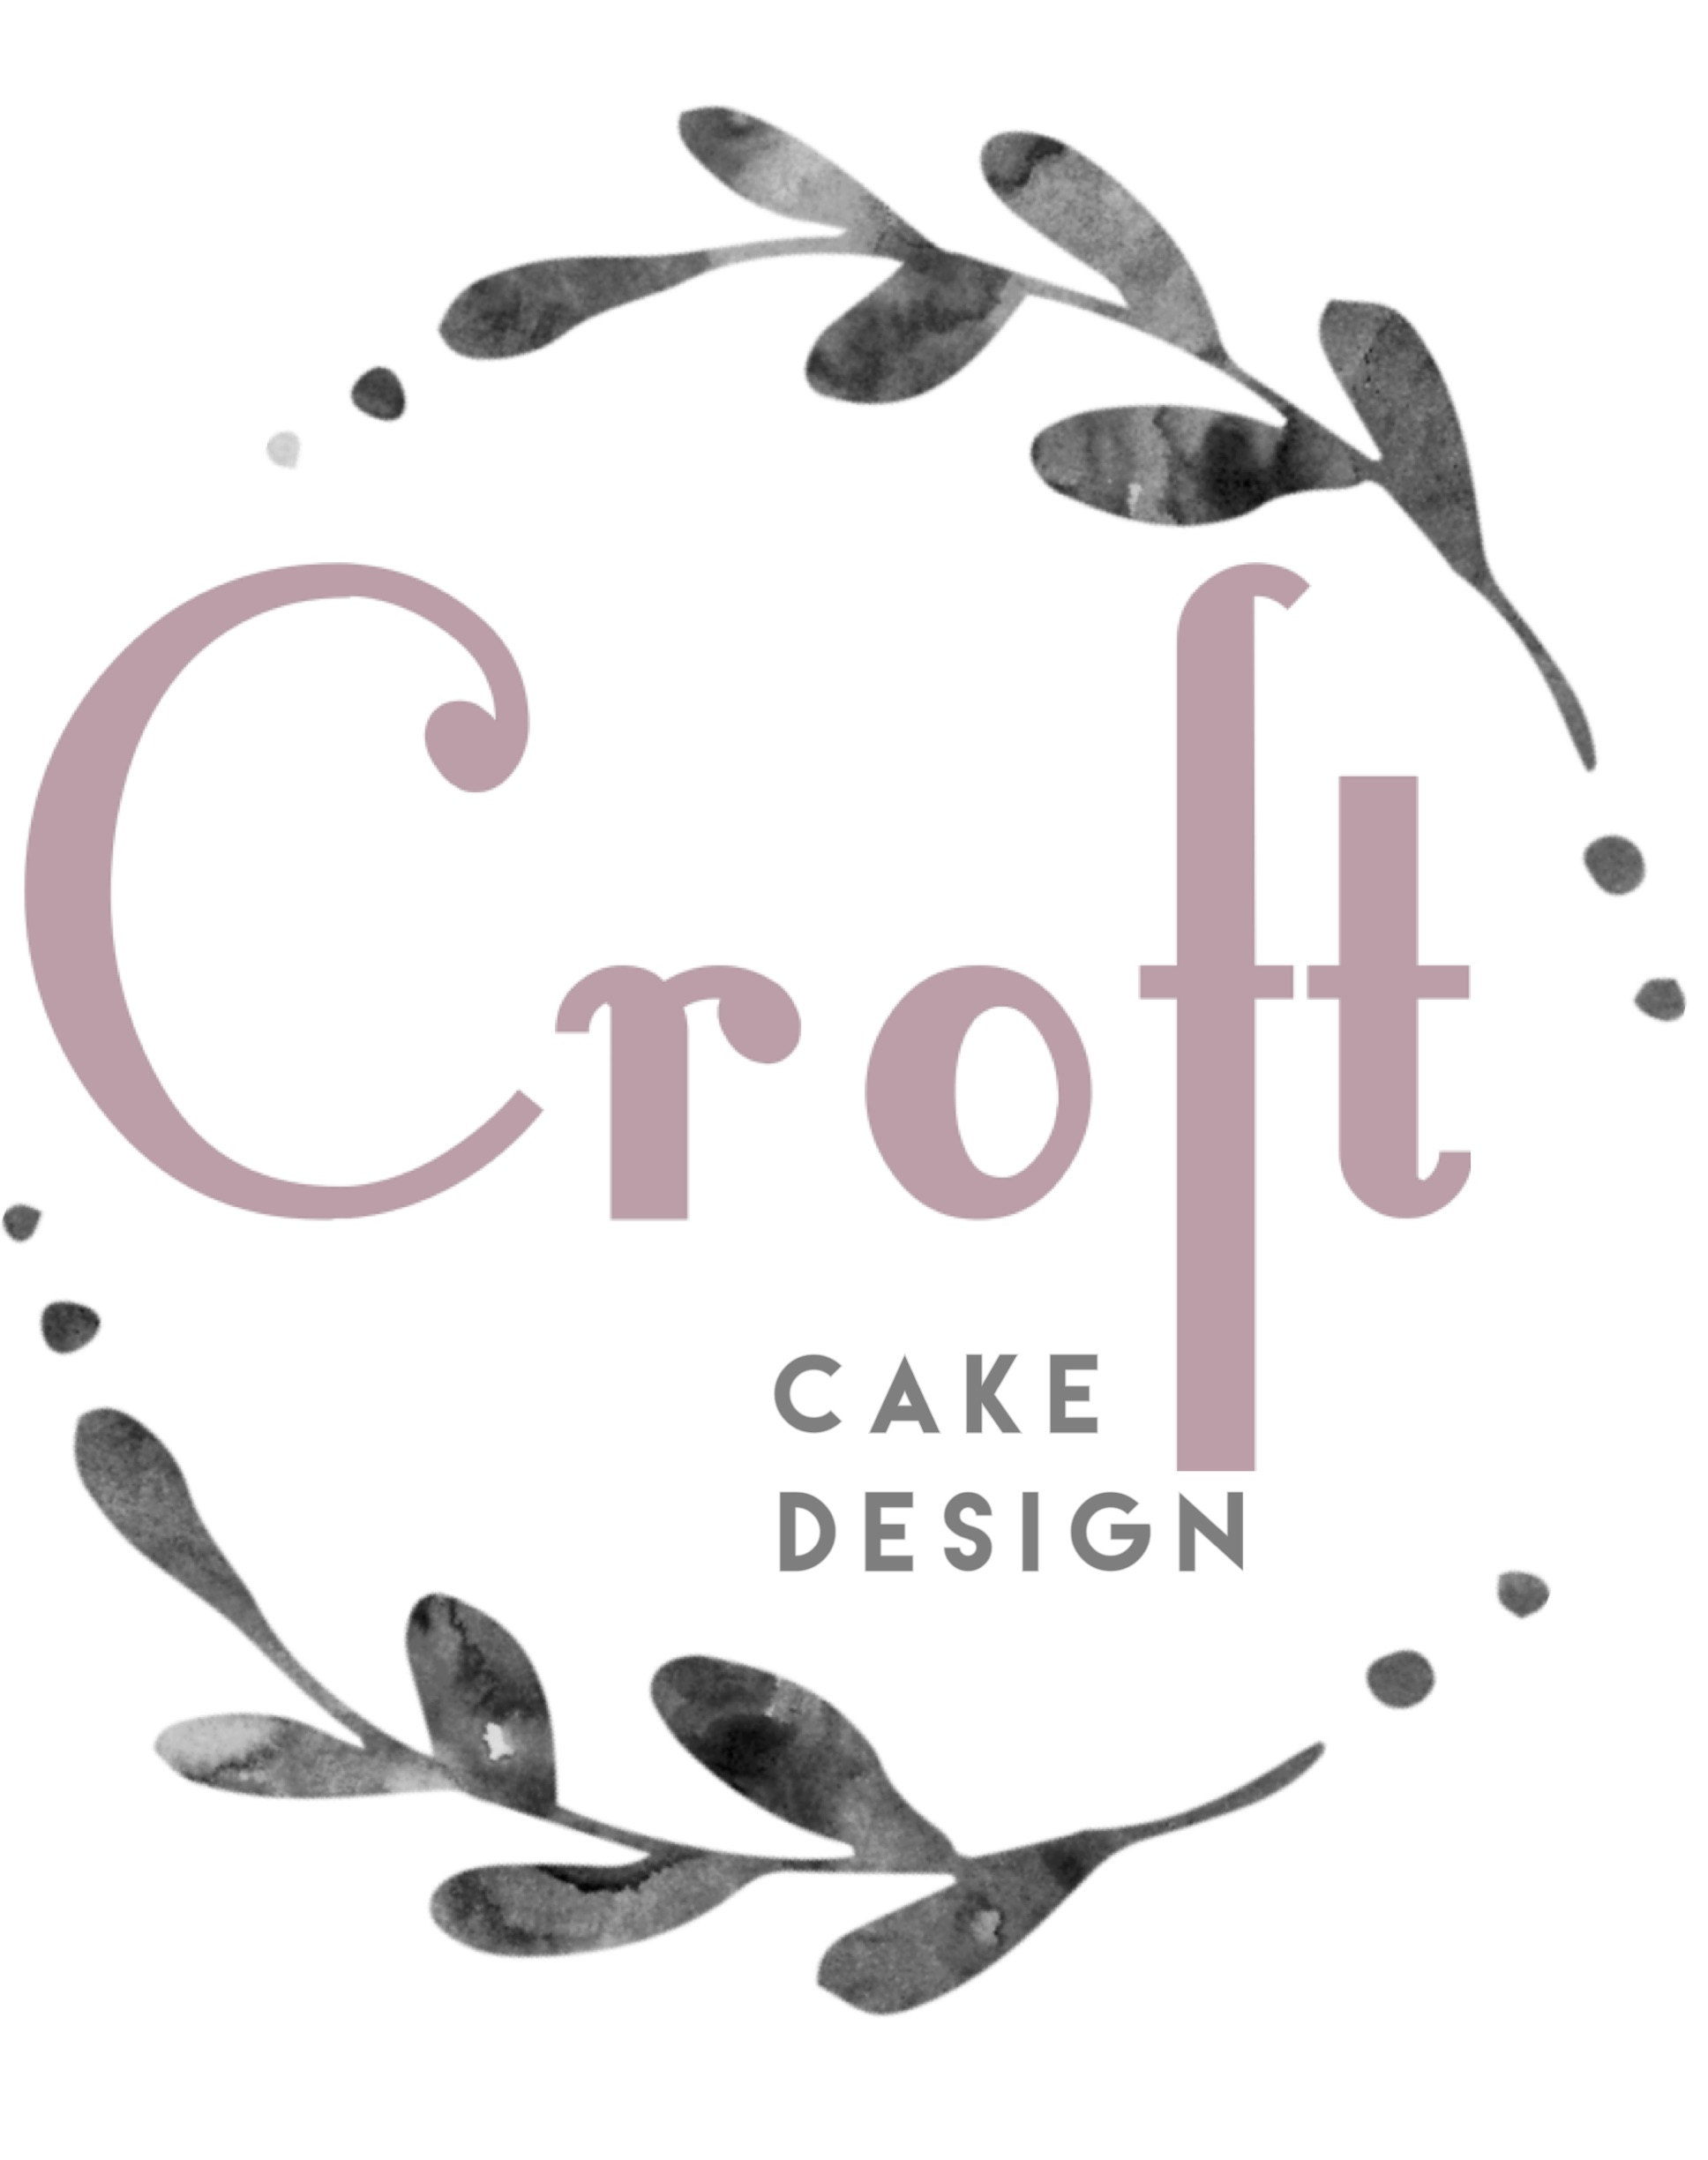 Croft Cake Design | Wedding & Occasion Cakes | Luxury & Bespoke